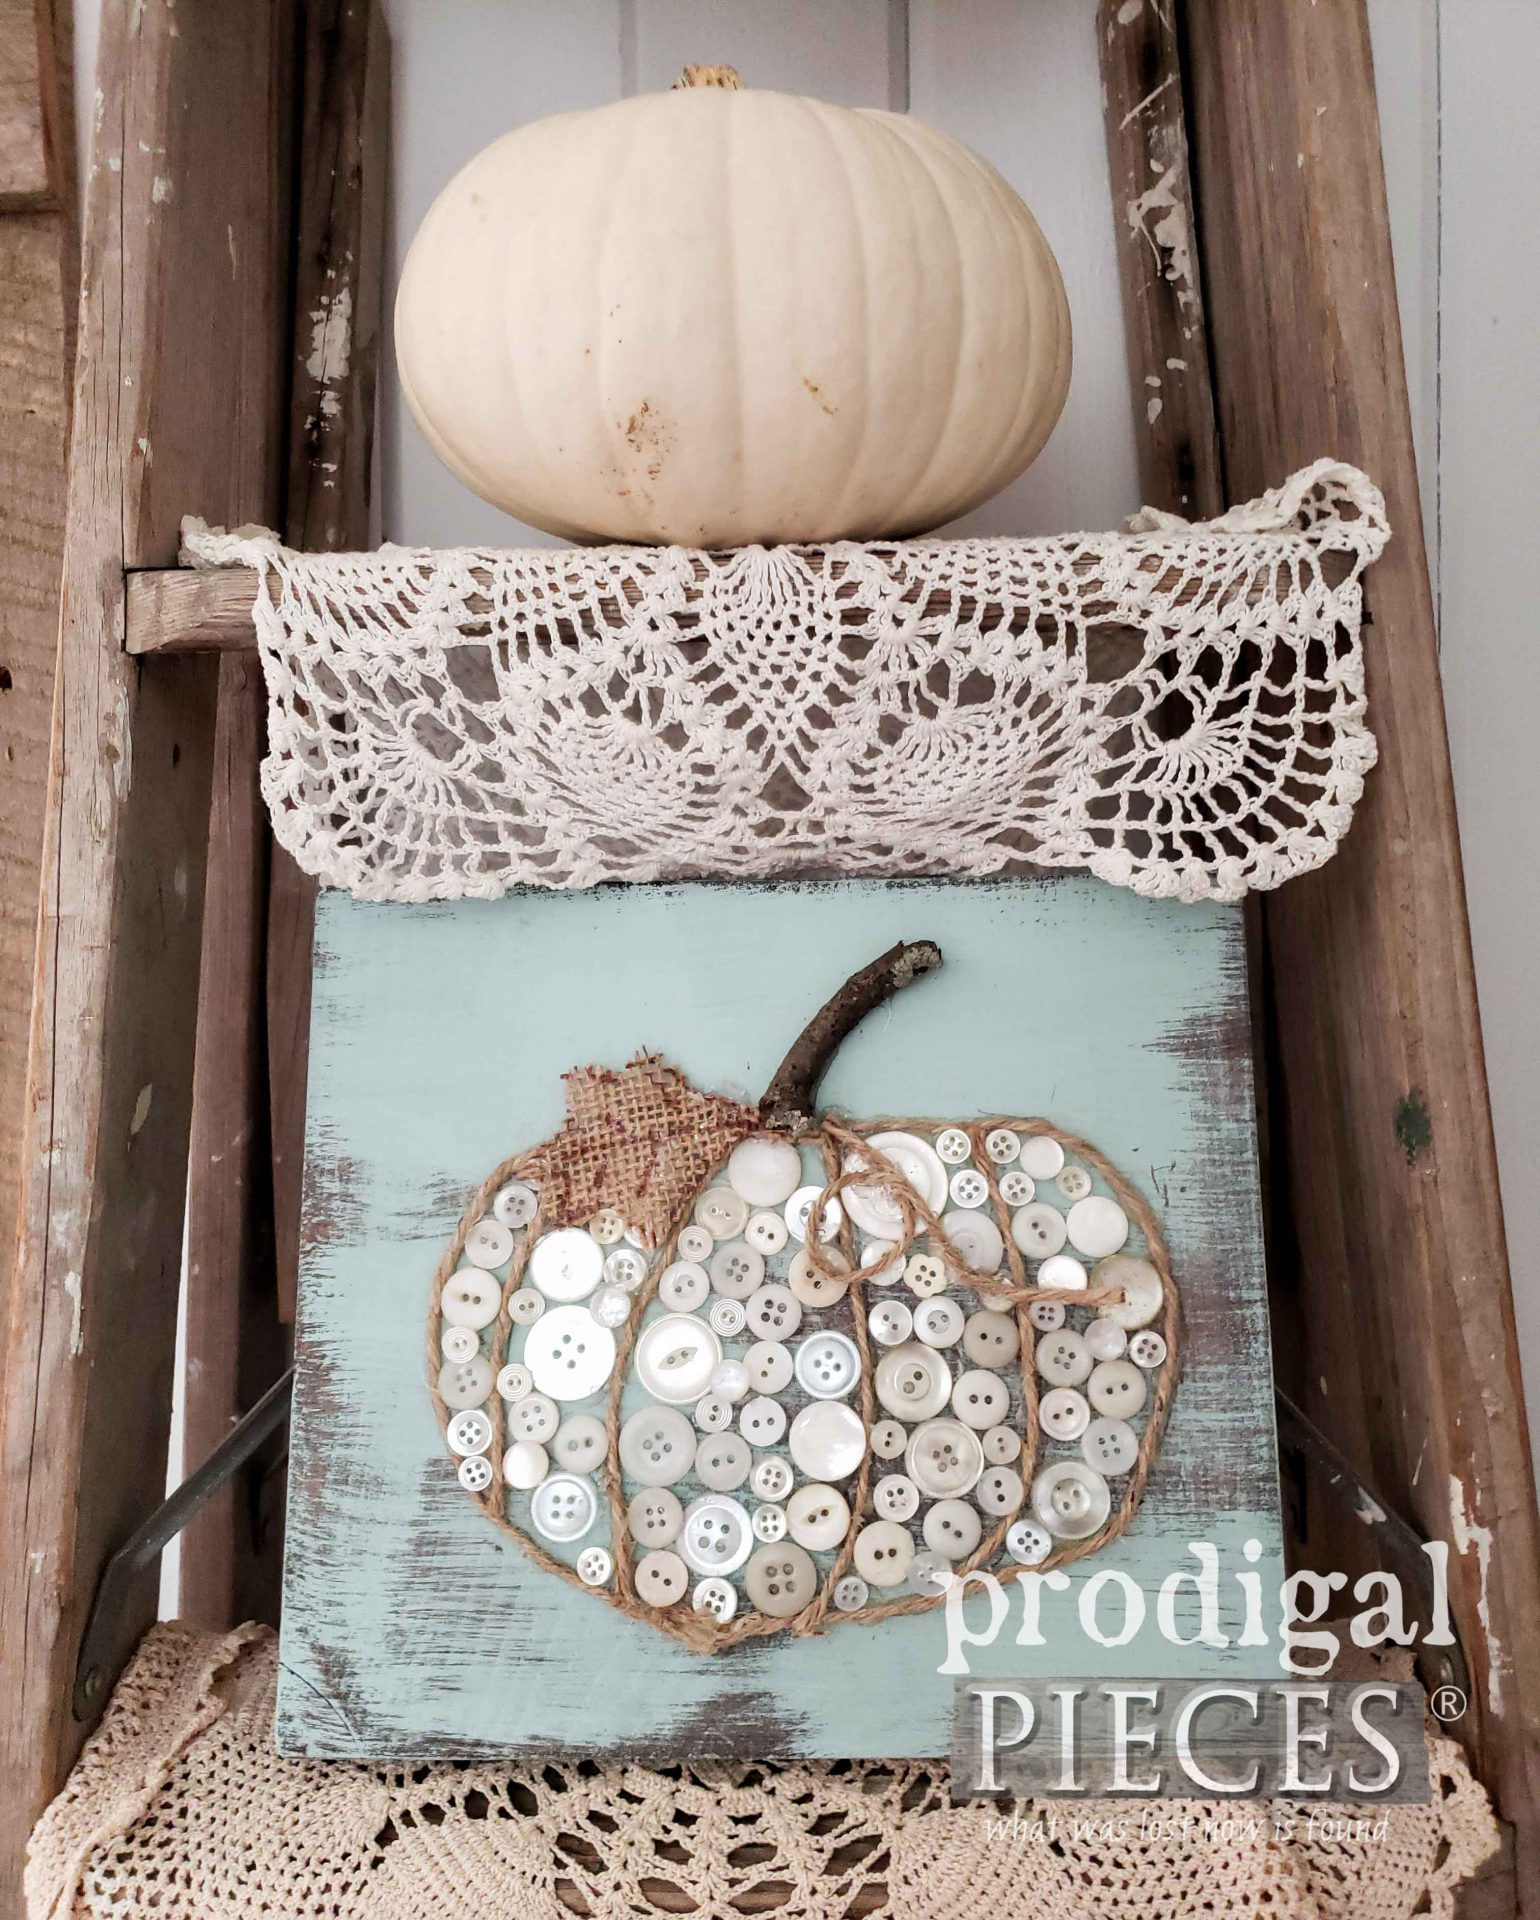 Rustic Farmhouse Button Pumpkin Video Tutorial by Prodigal Pieces Kids CREATE | prodigalpieces.com | #prodigalpieces #diy #kids #crafts #pumpkin #home #homedecor